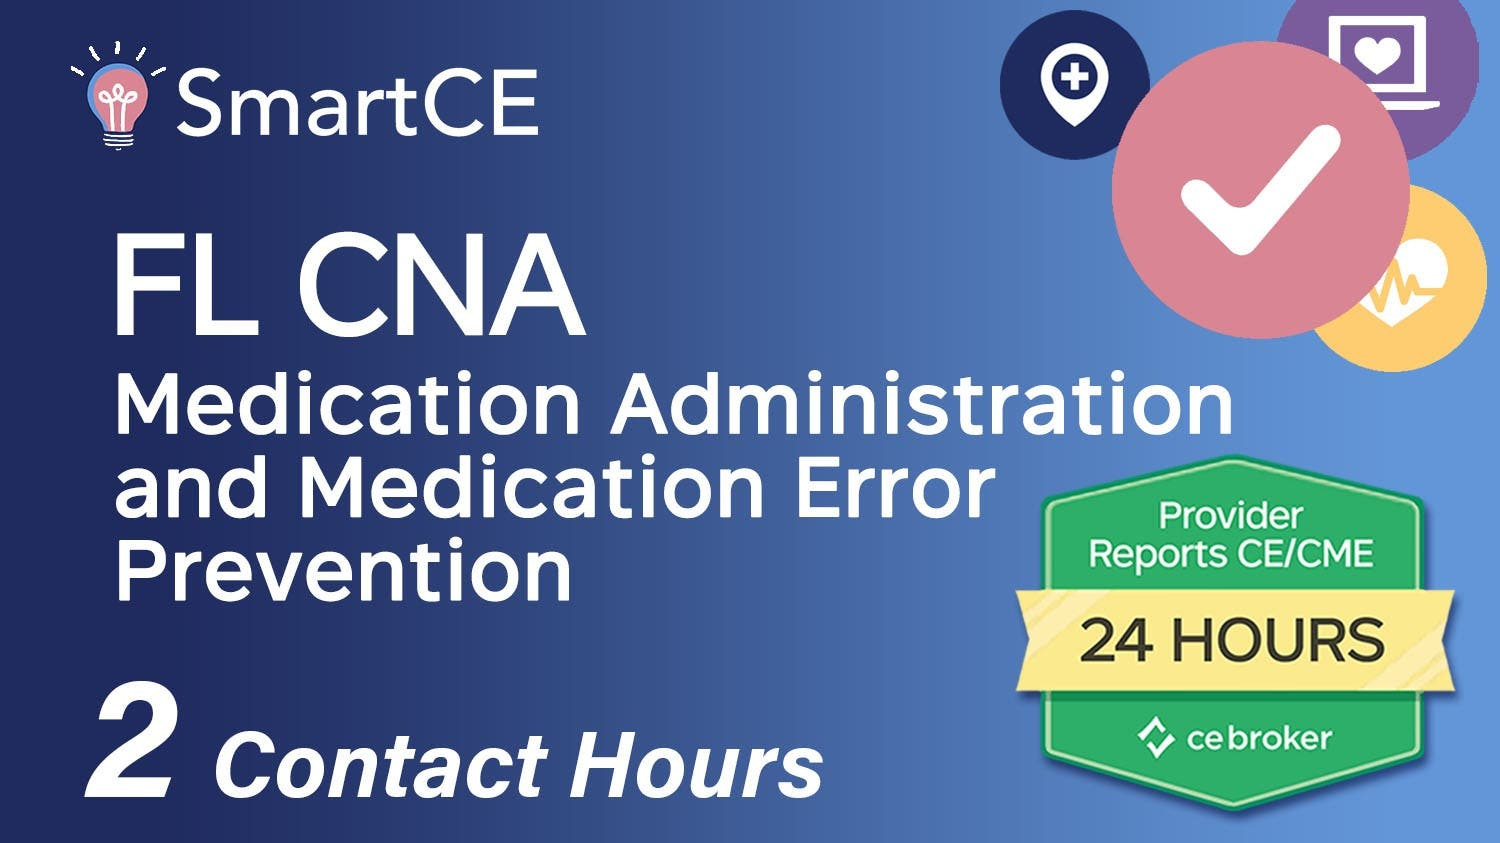 Medication Administration and Medication Error Prevention for FL CNA's - 2 Contact Hours /20-715933